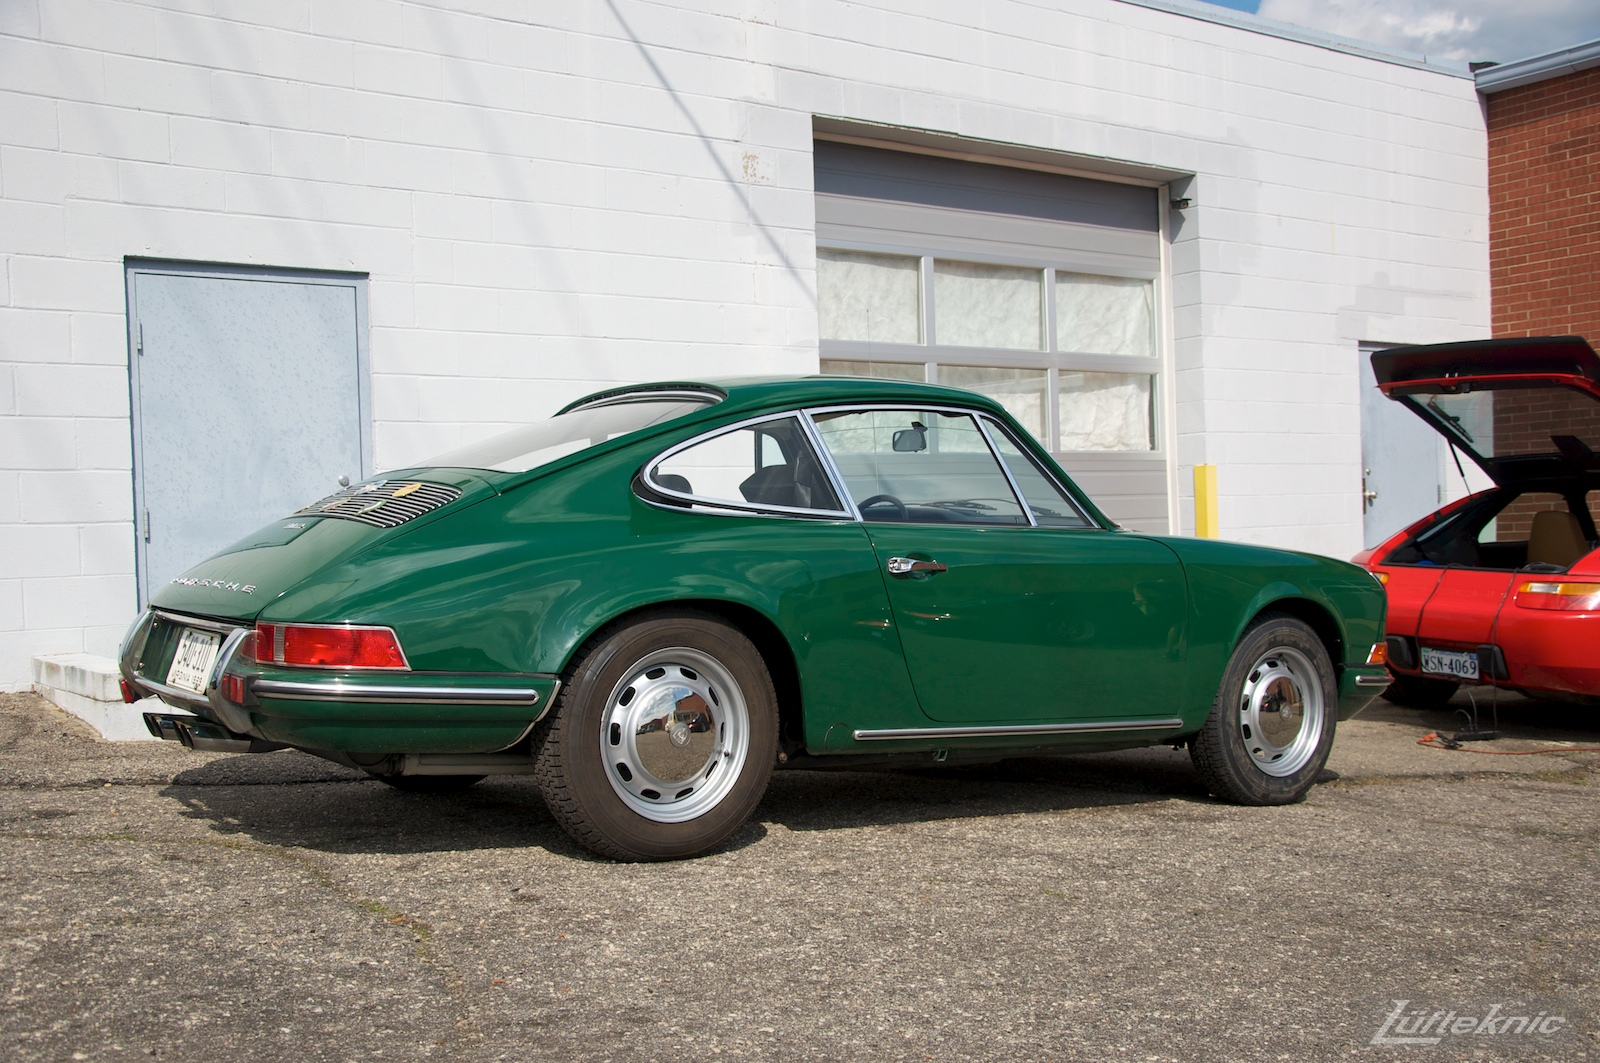 An Irish Green Porsche 912 which has been completely restored by Lufteknic sitting in the shop parking lot.